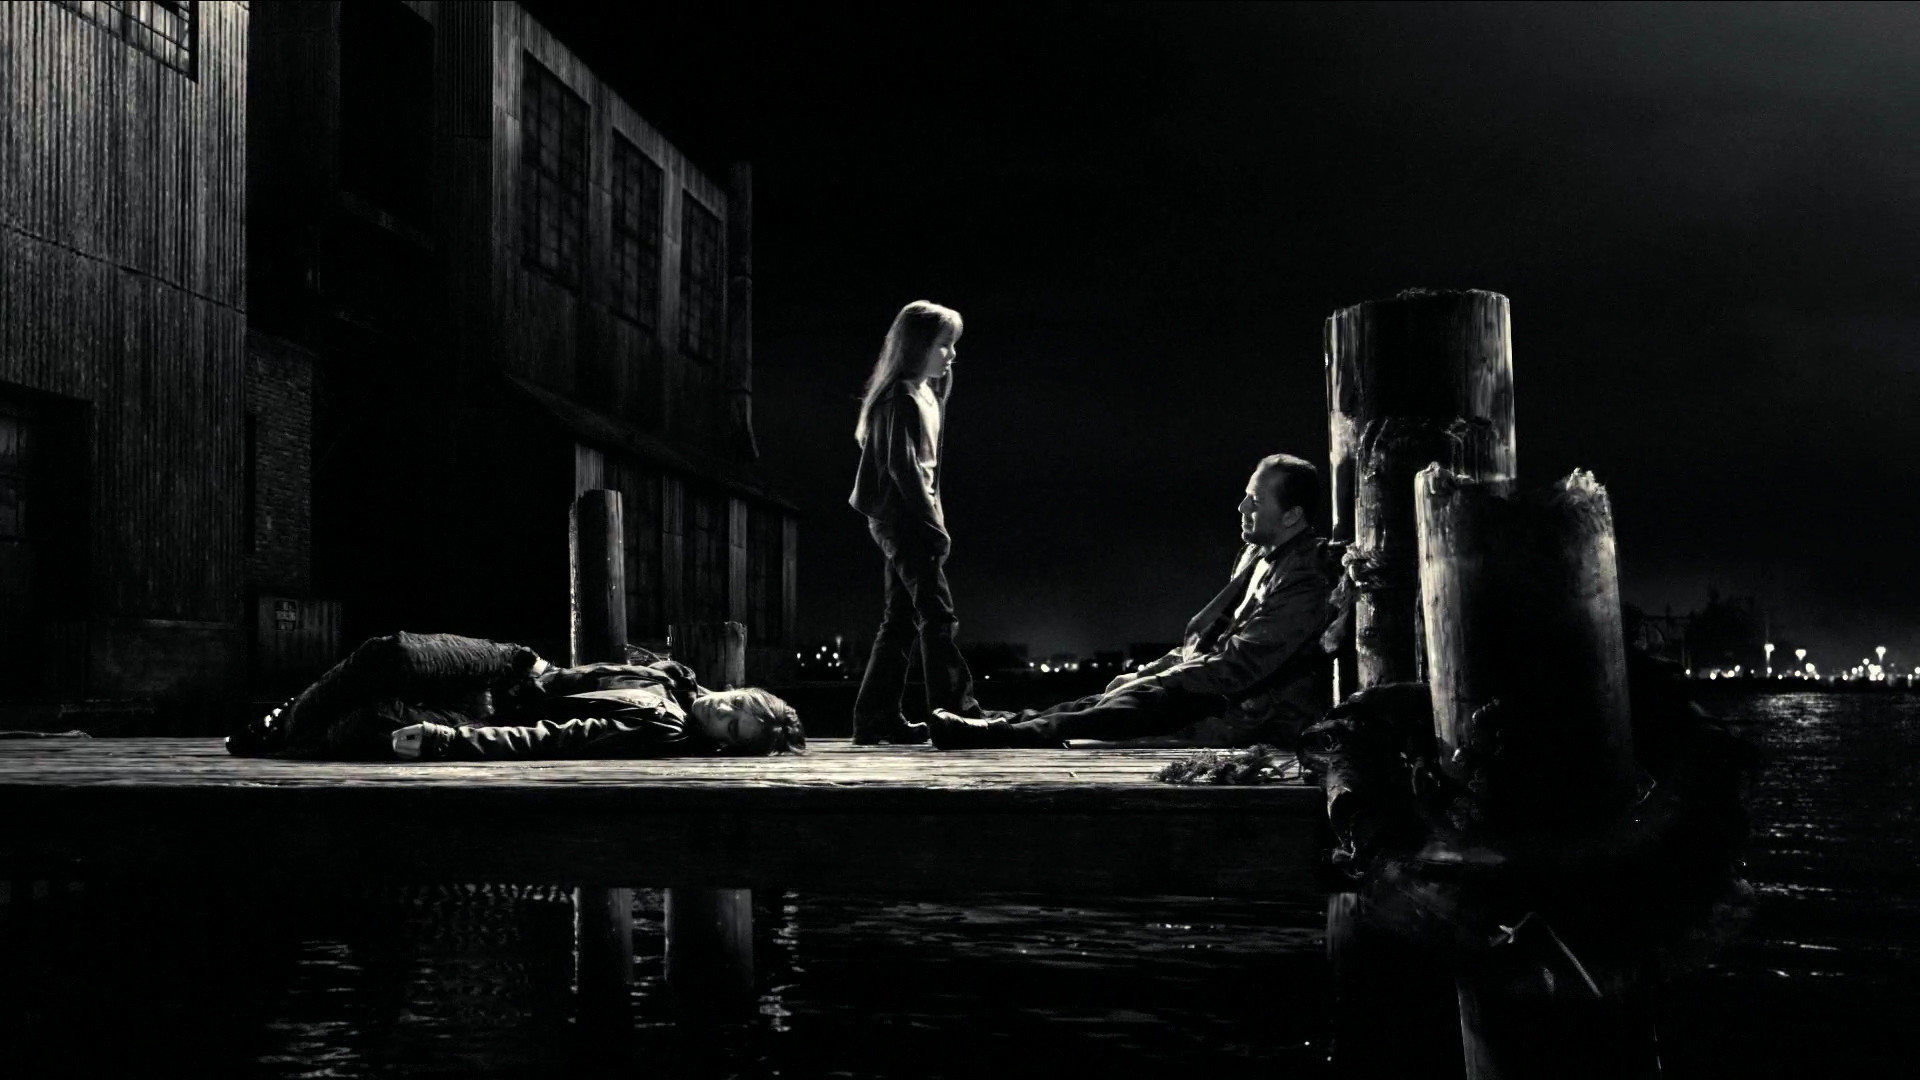 Film Noir Wallpapers 73 Images